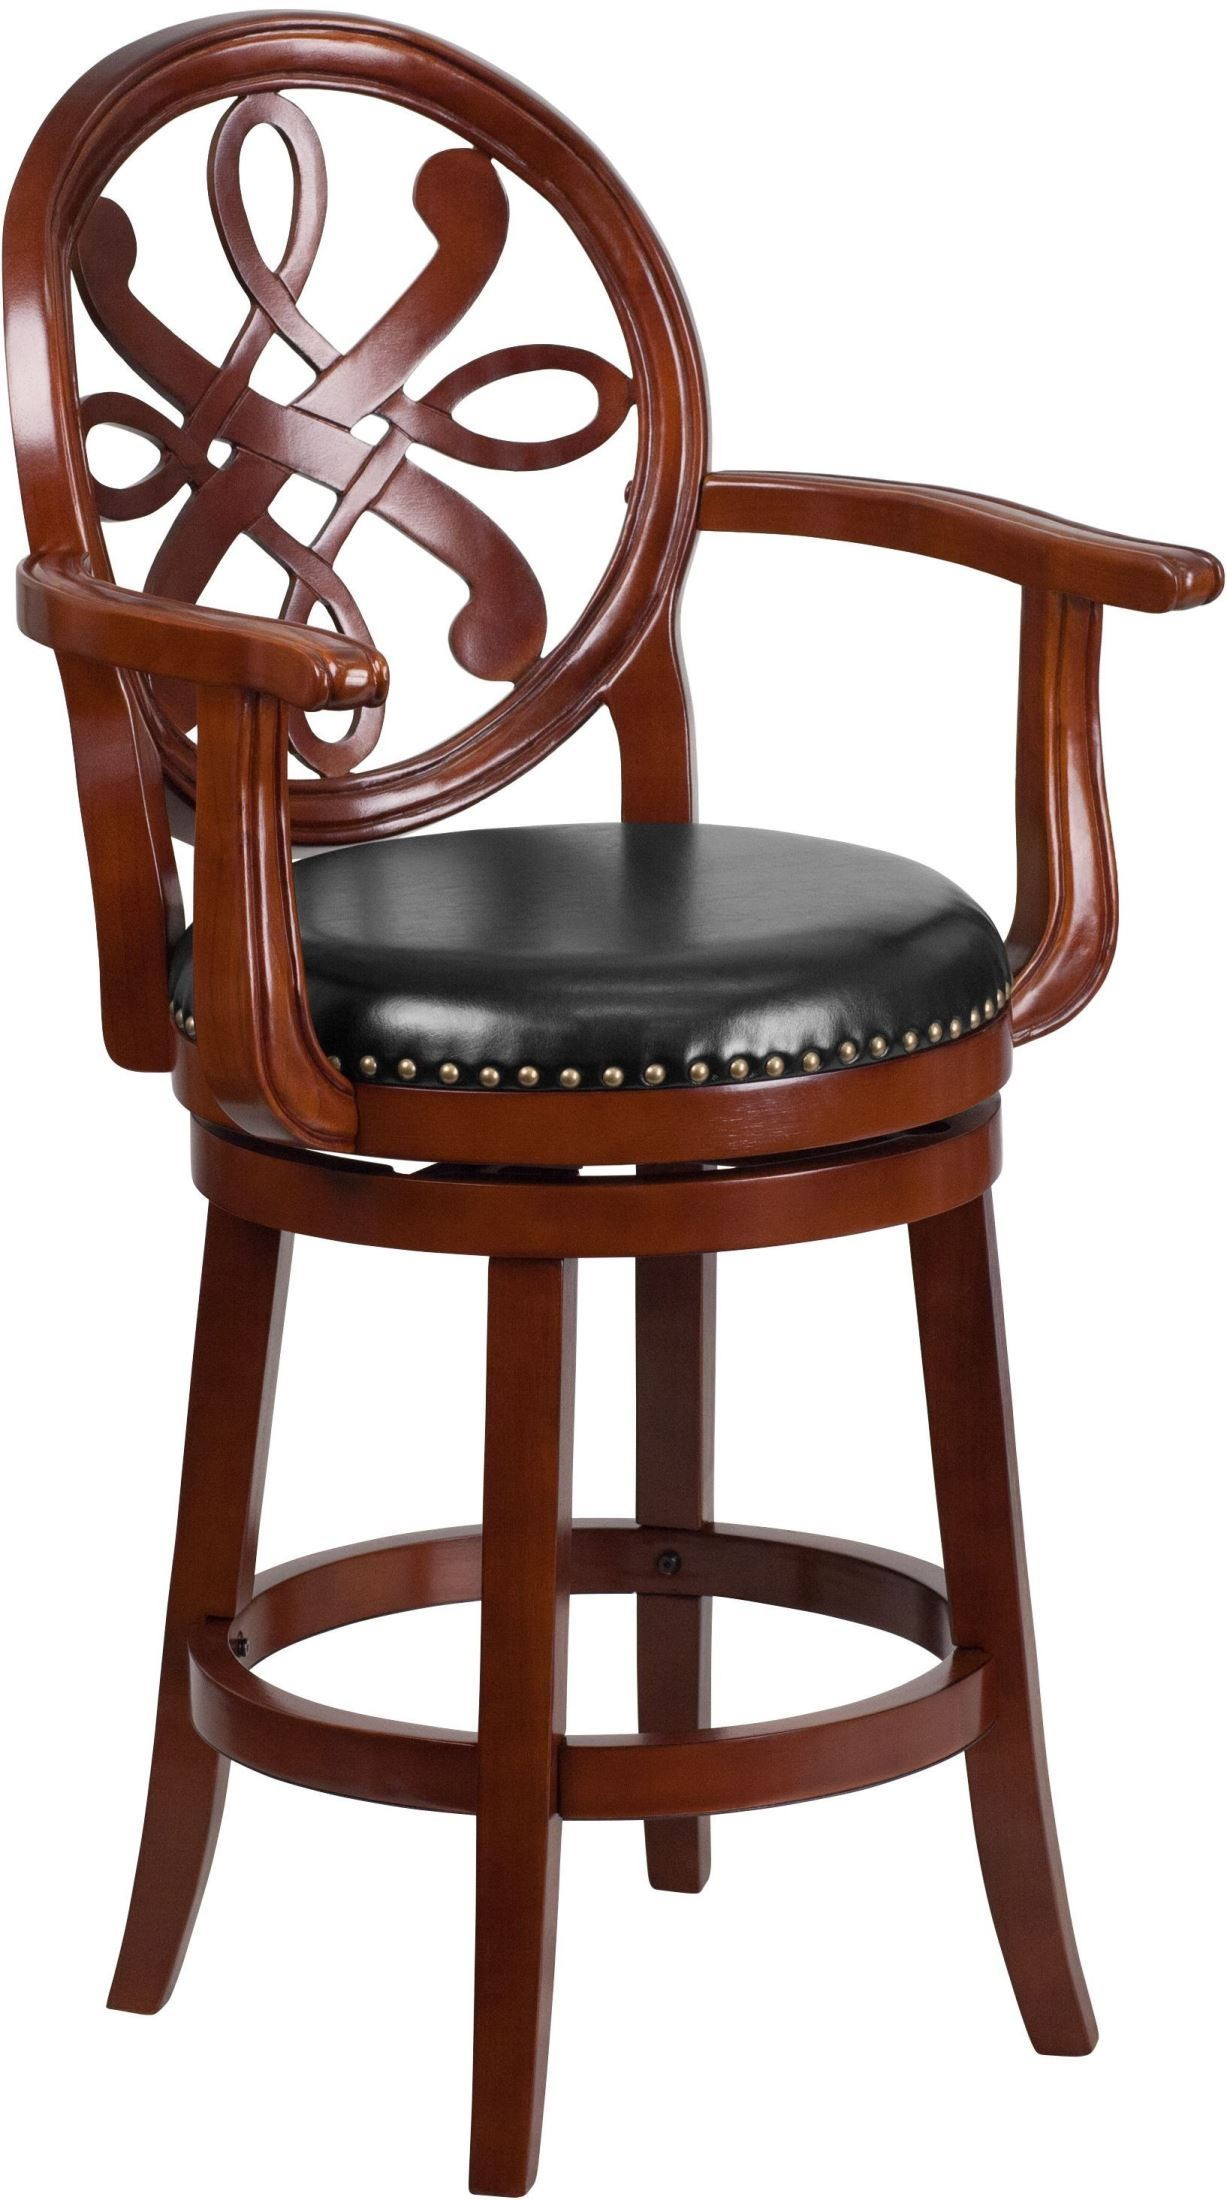 26inch Black Swivel High Cherry Wood Counter Chair With